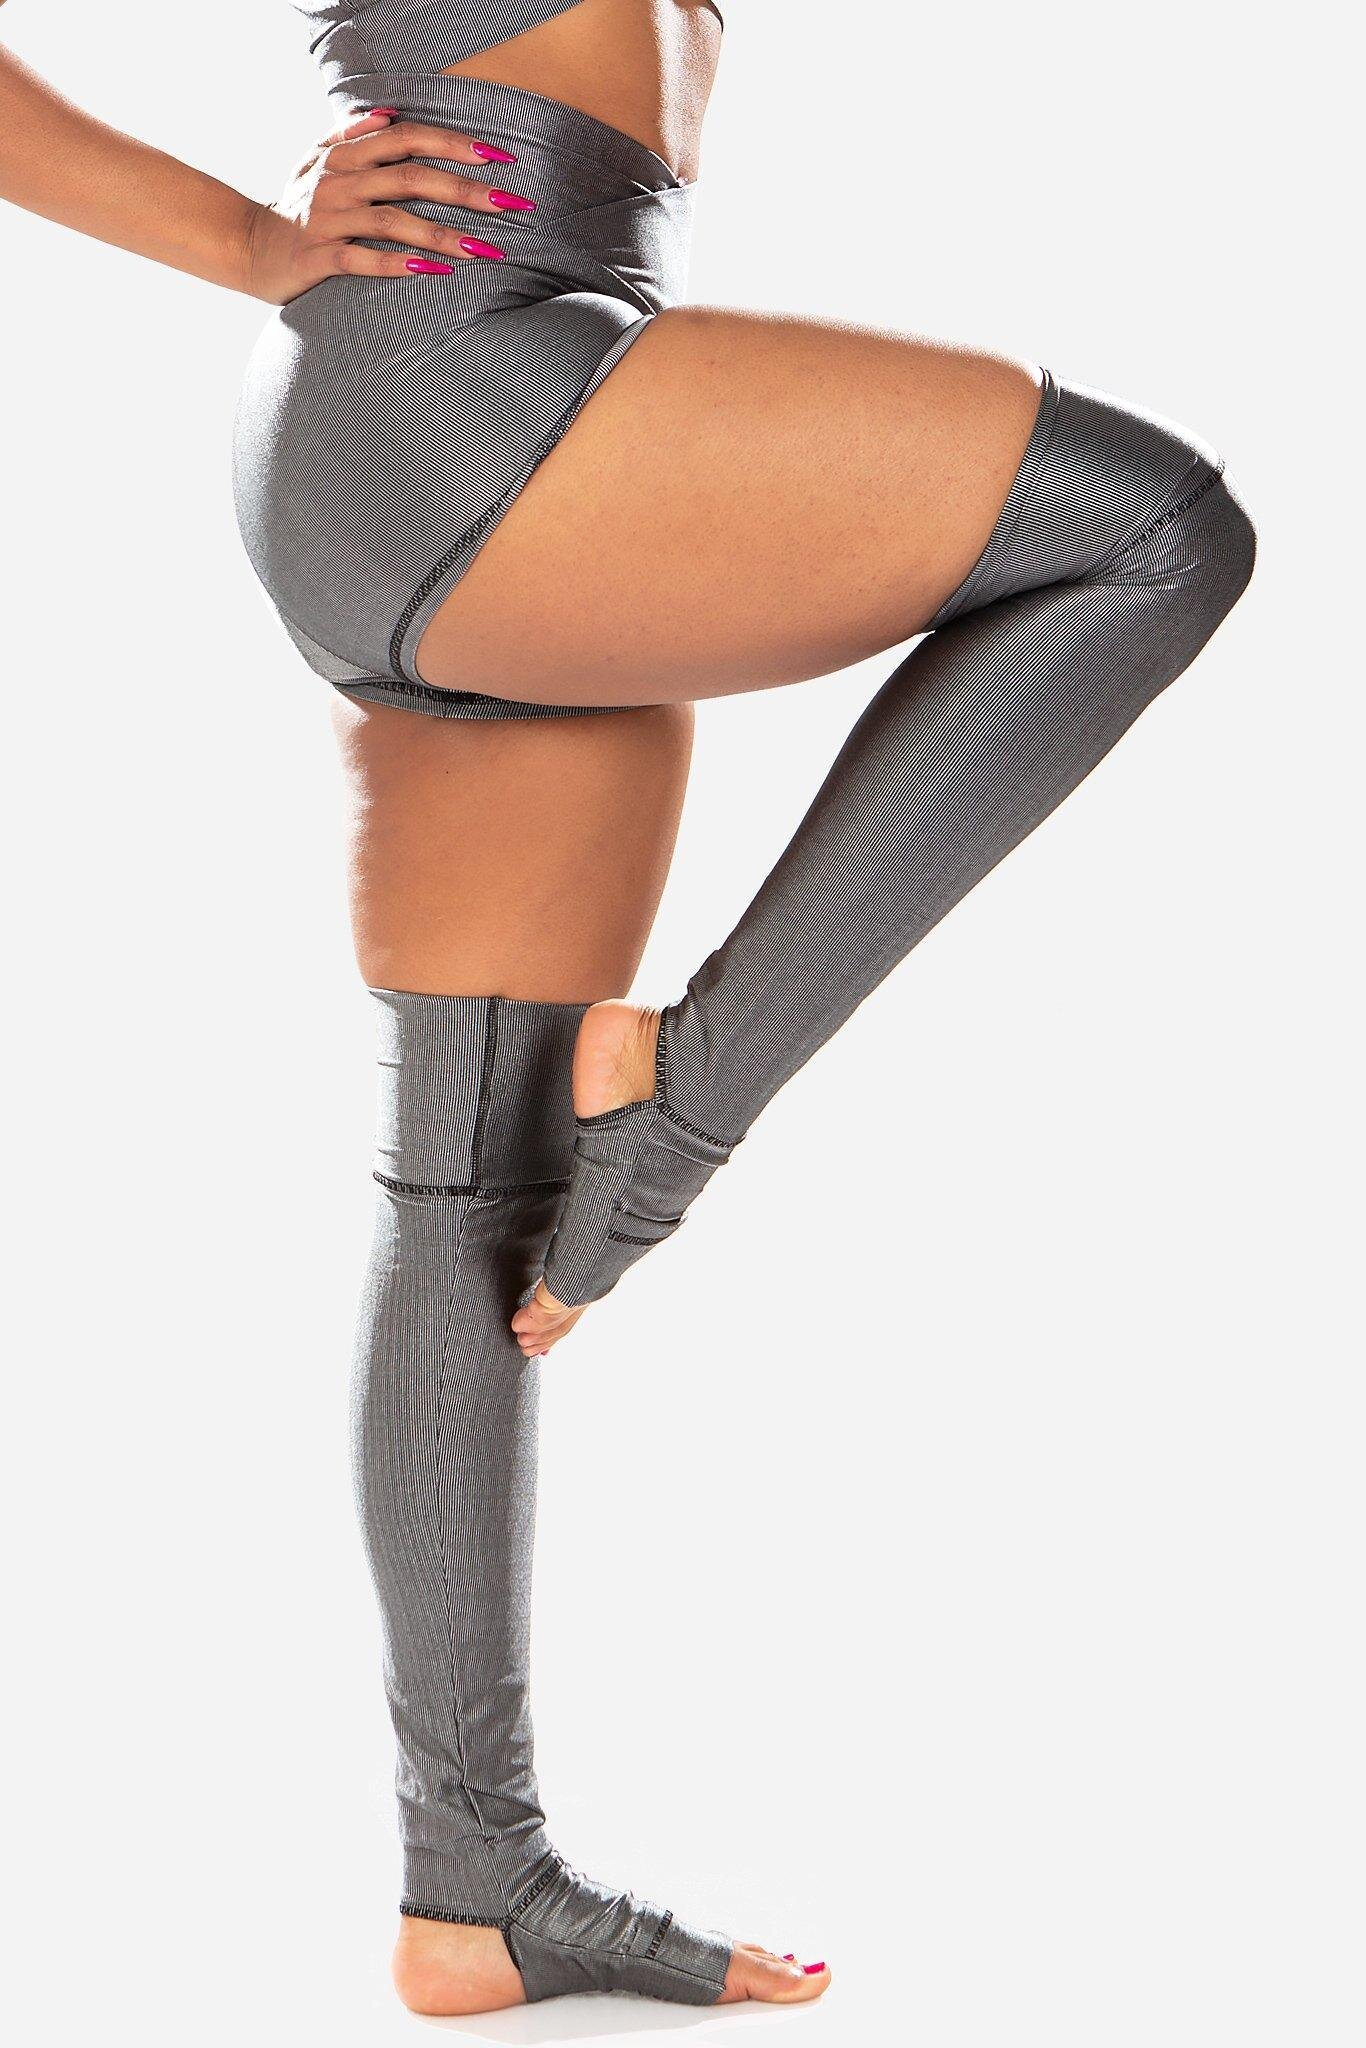 - 8. Stocking Stuffer: Leg Warmers or MalasSmall enough to fit in a stocking, stick with our popular leg warmers or beautiful mala!